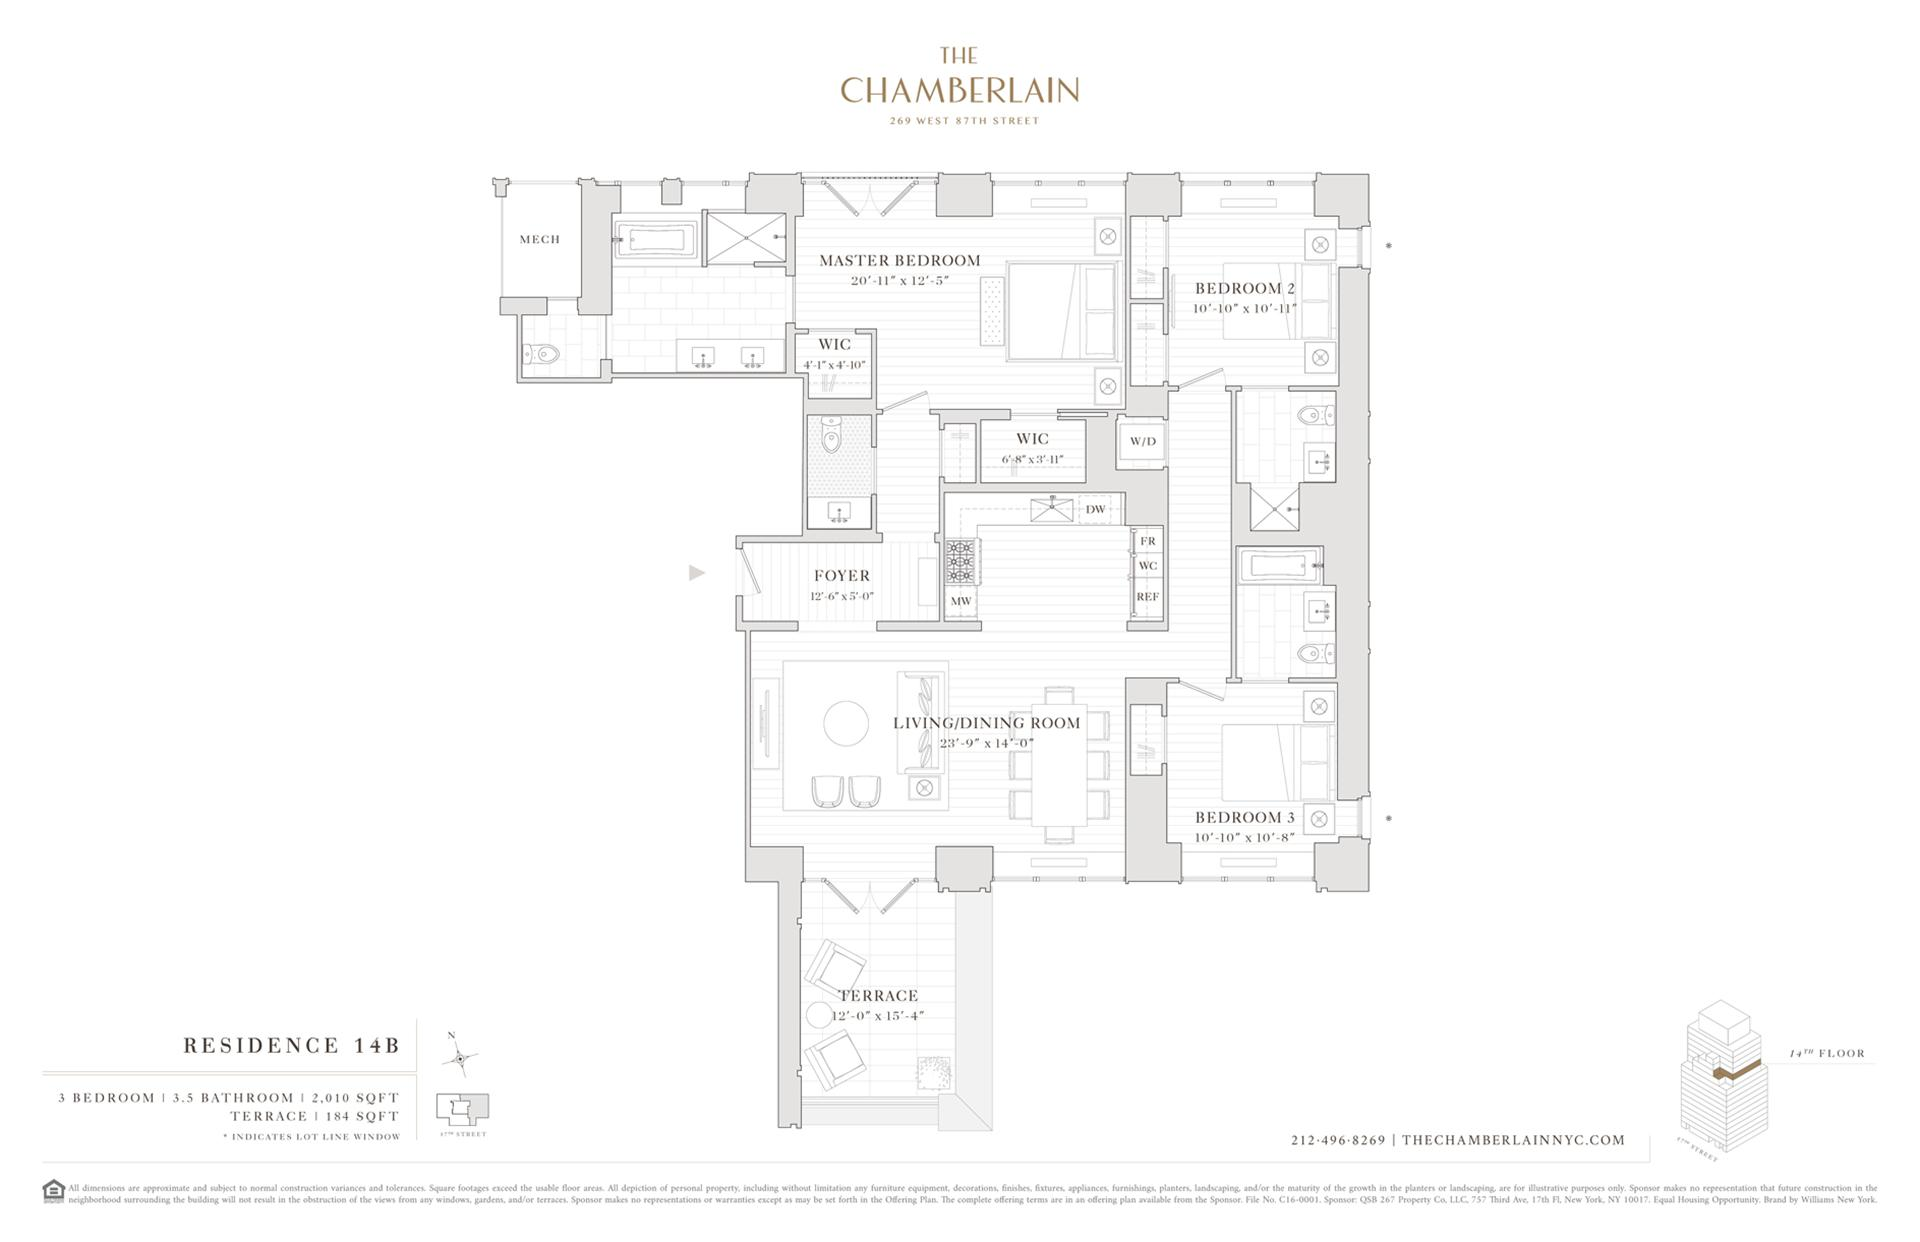 Floor plan of 269 West 87th St, 14B - Upper West Side, New York